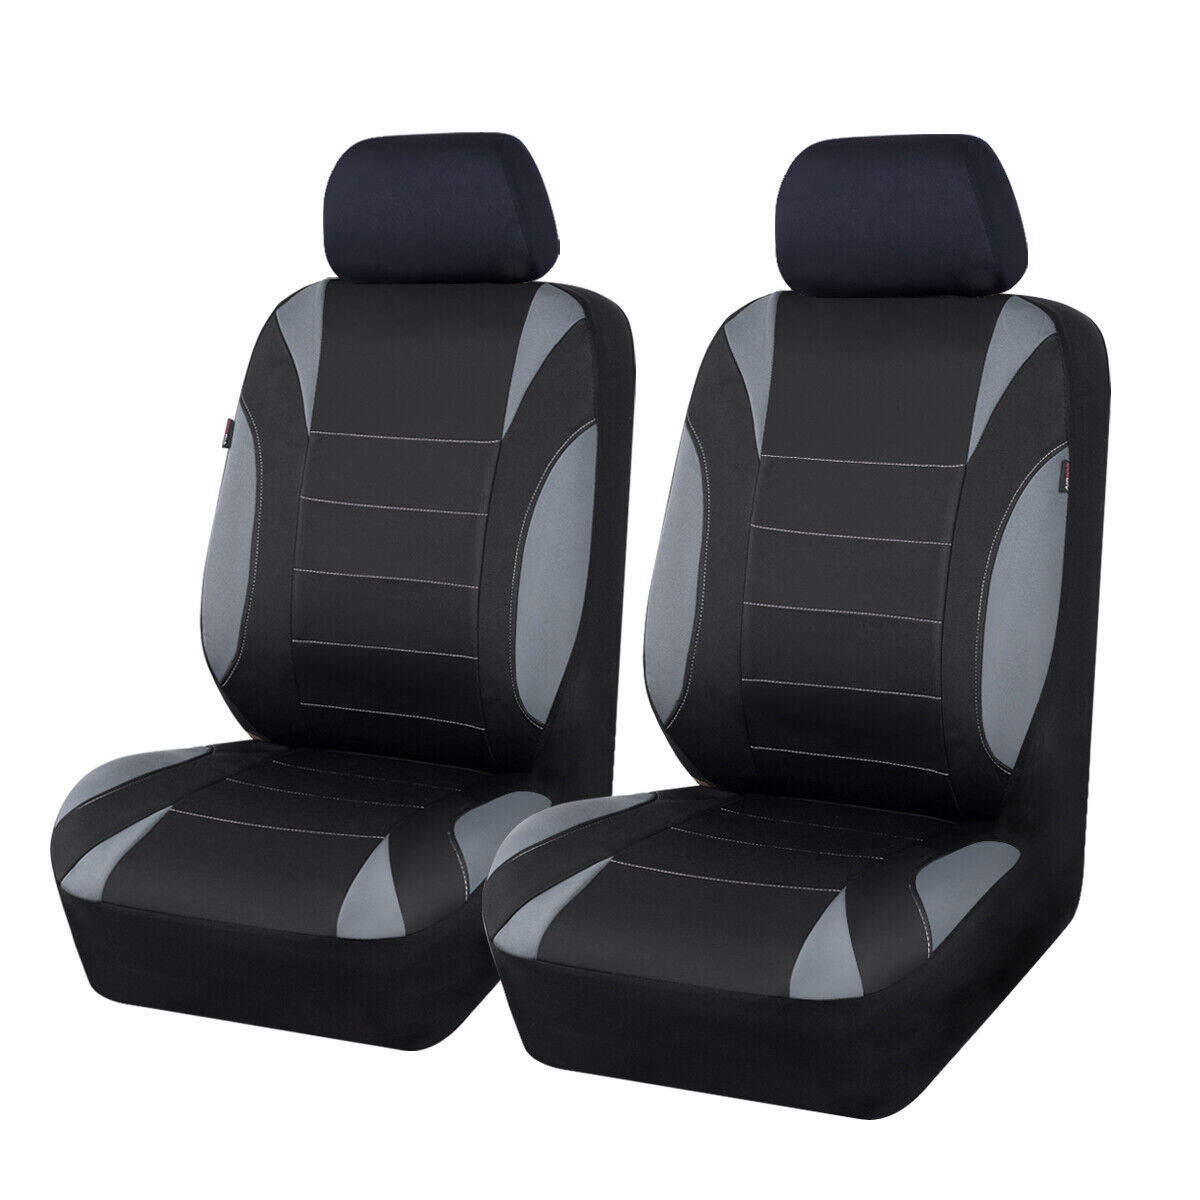 CAR PASS Universal fit for vehicles Neoprene waterproof full car seat covers